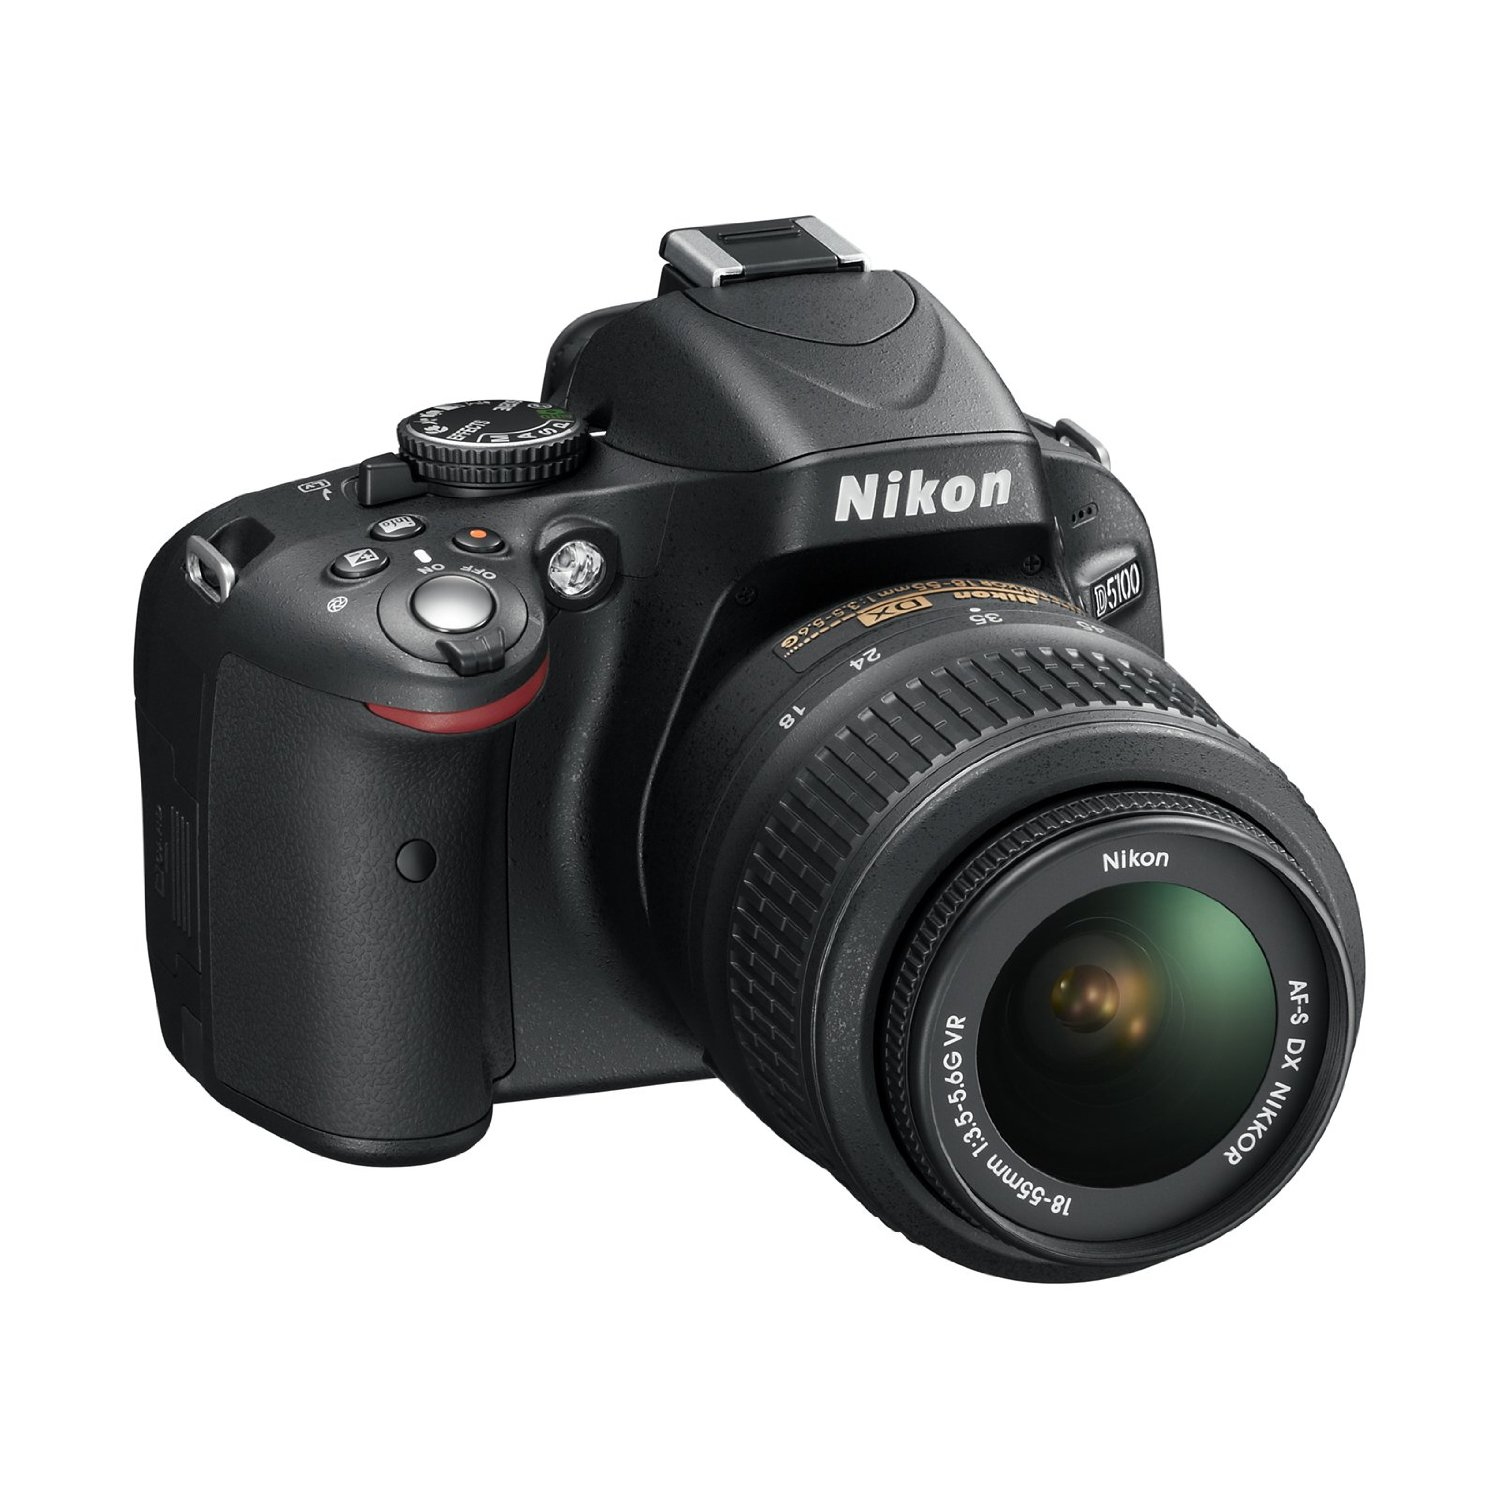 Review of Nikon D5100 16.2MP CMOS Digital SLR Camera with 18-55mm f/3.5-5.6 AF-S DX VR Nikkor Zoom Lens